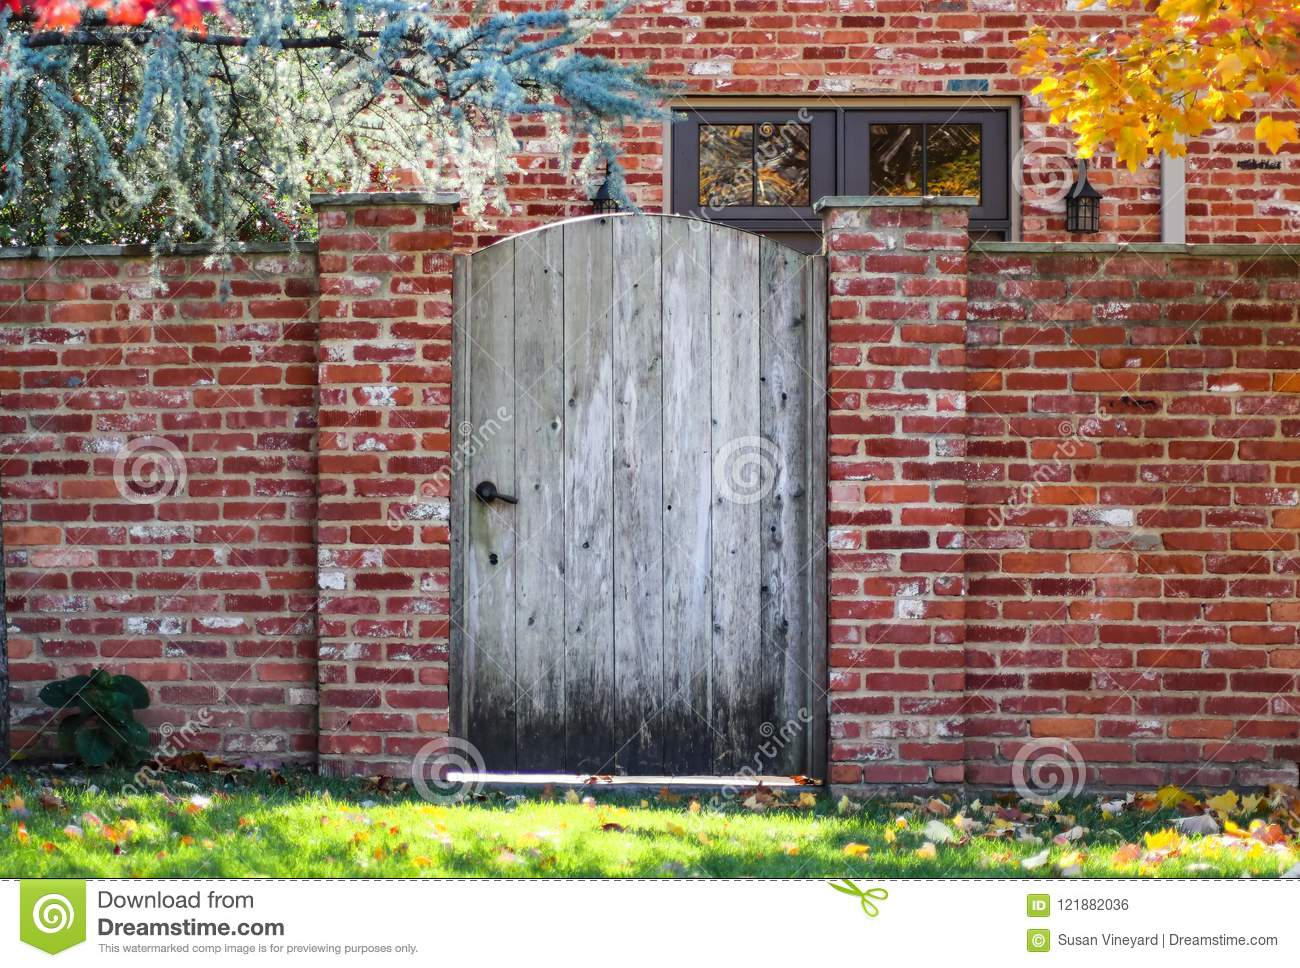 Rustic Wooden Arched Garden Fence In Brick Wall In Autumn With